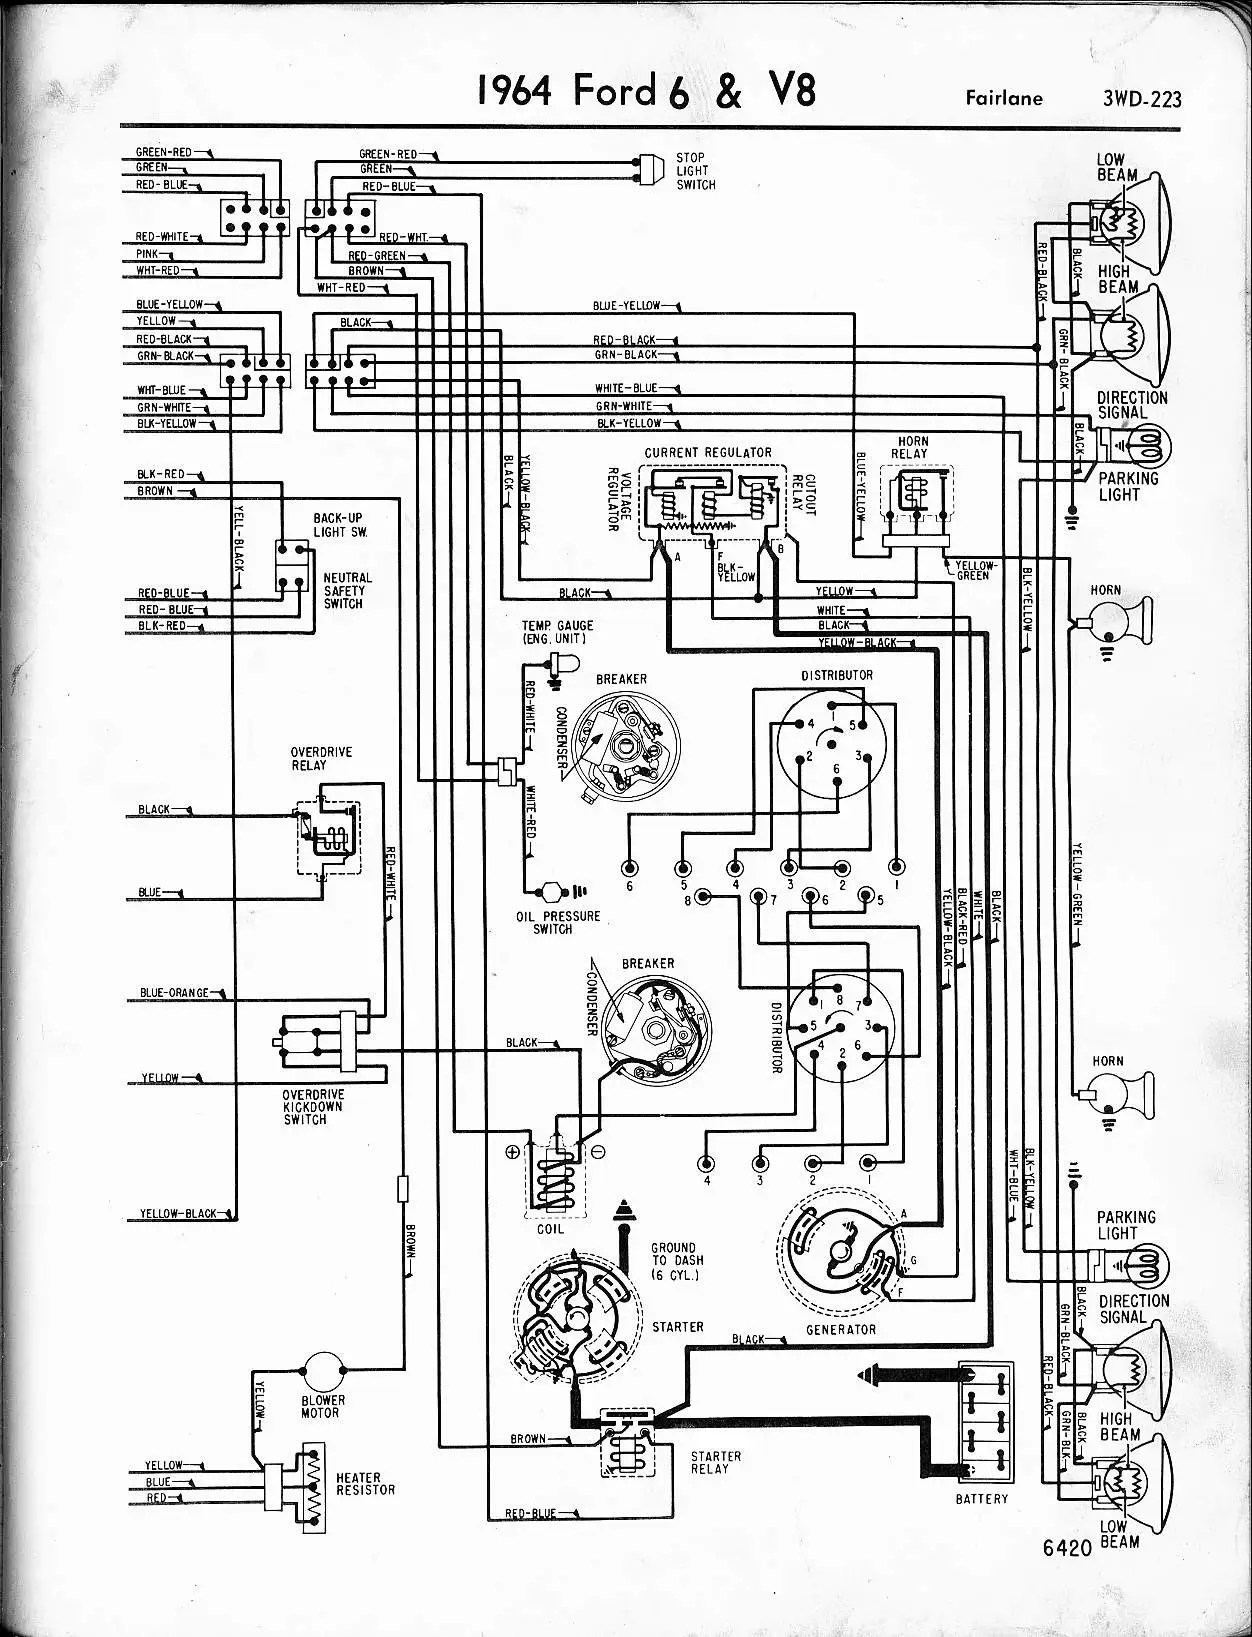 64 f100 wiring diagram wiring schematic data ford pinto ignition wiring diagram 64 f100 wiring diagram [ 1252 x 1637 Pixel ]